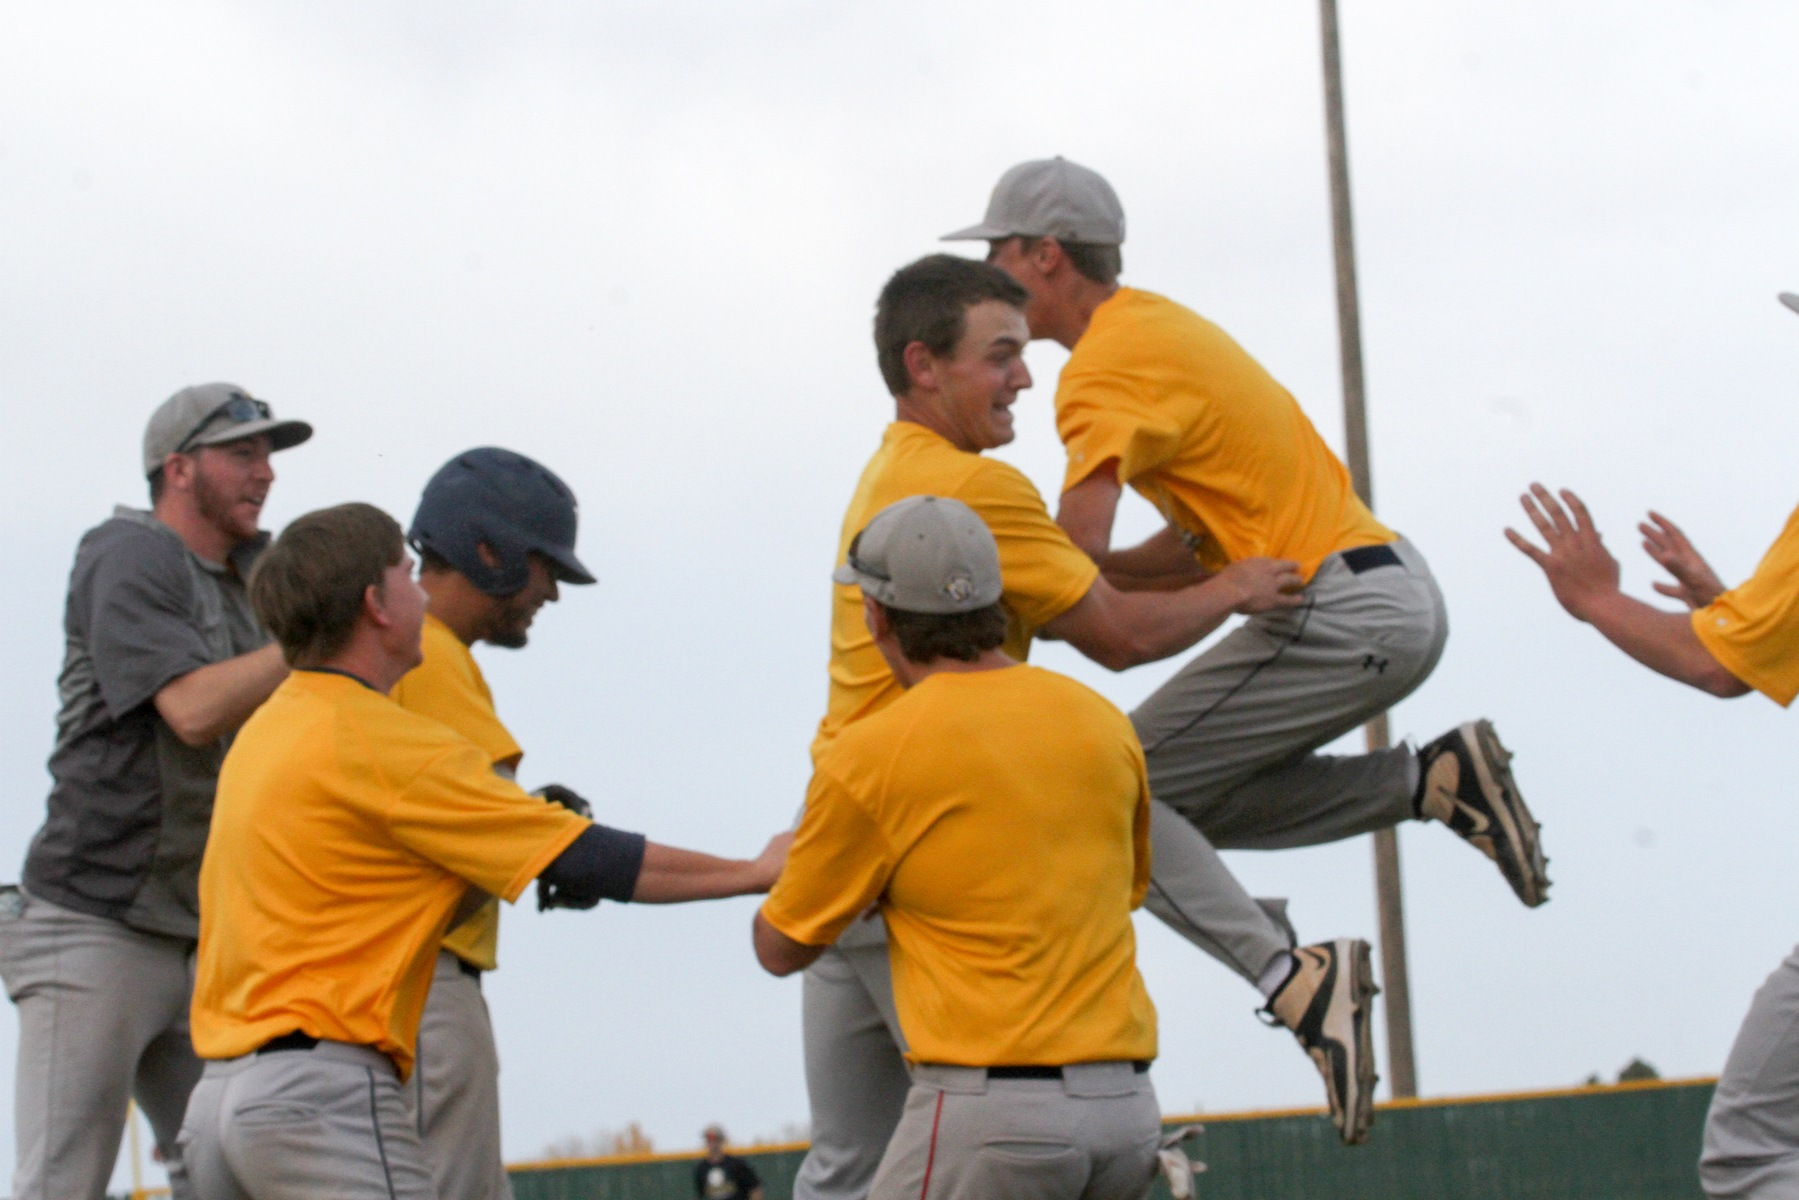 WNCC downs Lamar, wins Empire Conference and hosts regionals